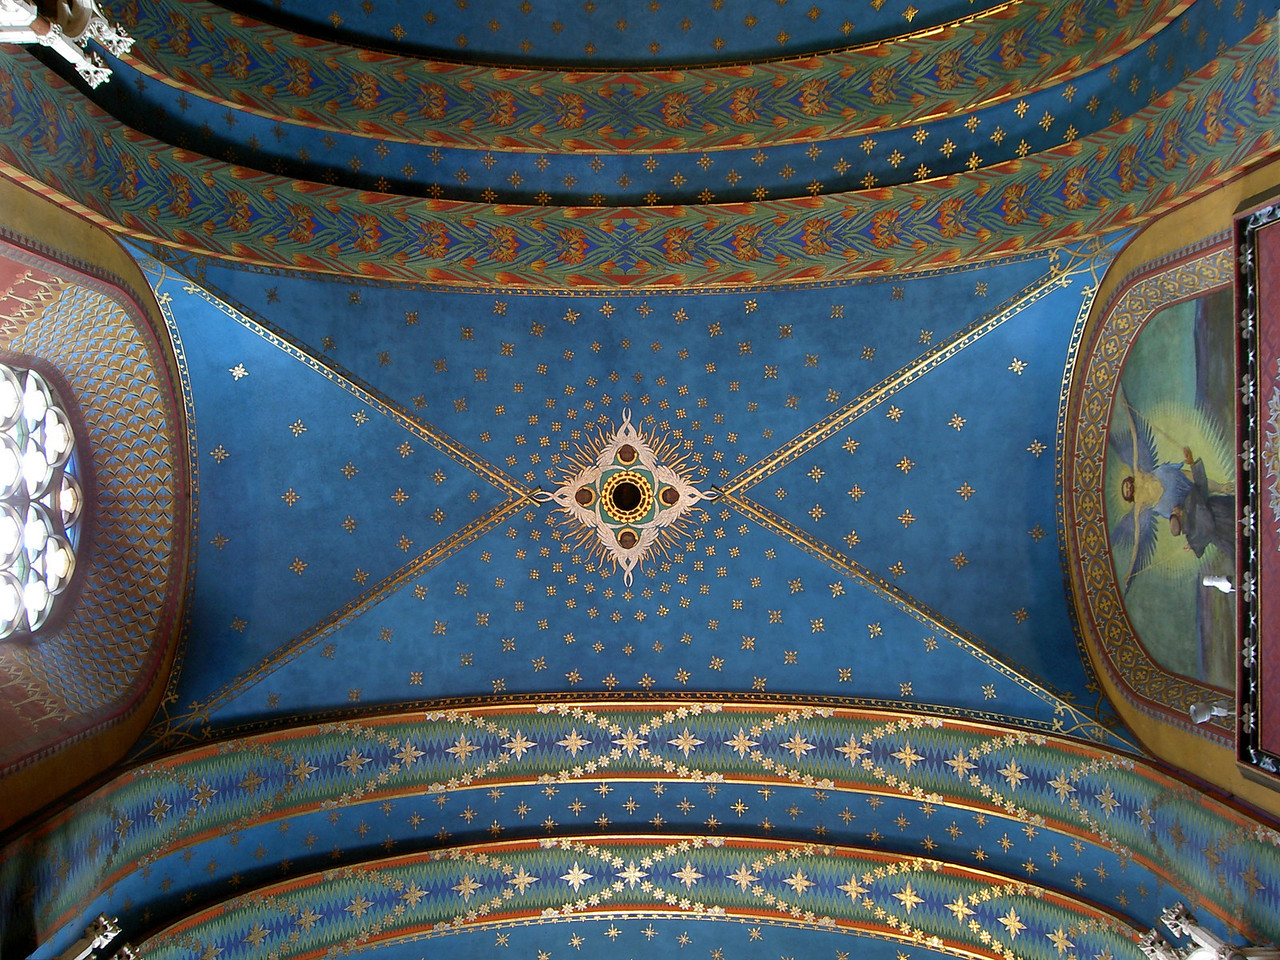 Ceiling of Franciscan church in Krakow